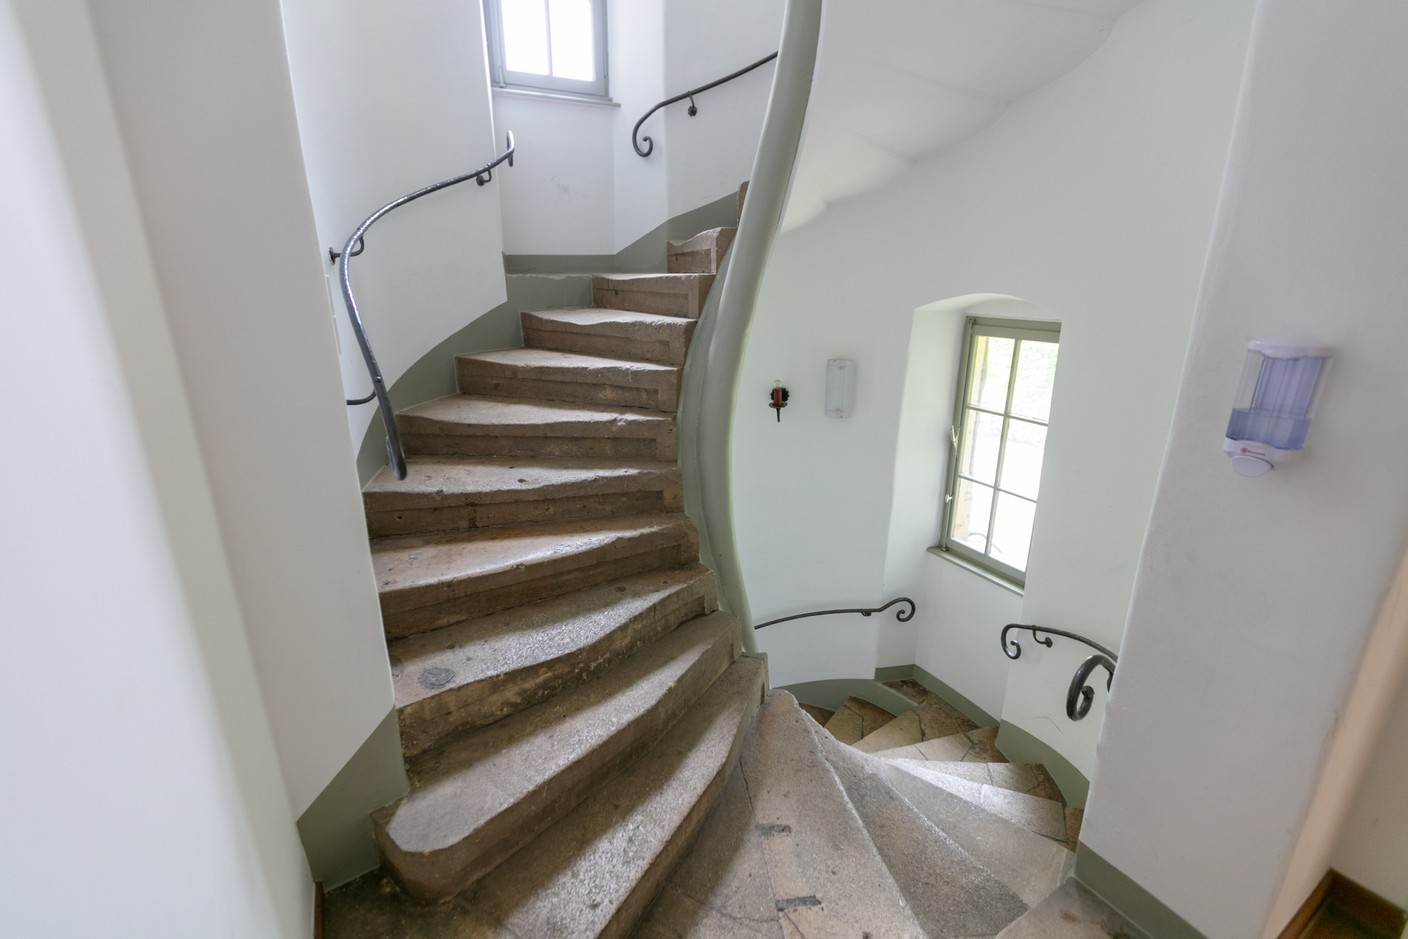 Stairs leading up one of the turrets Romain Gamba / Maison Moderne